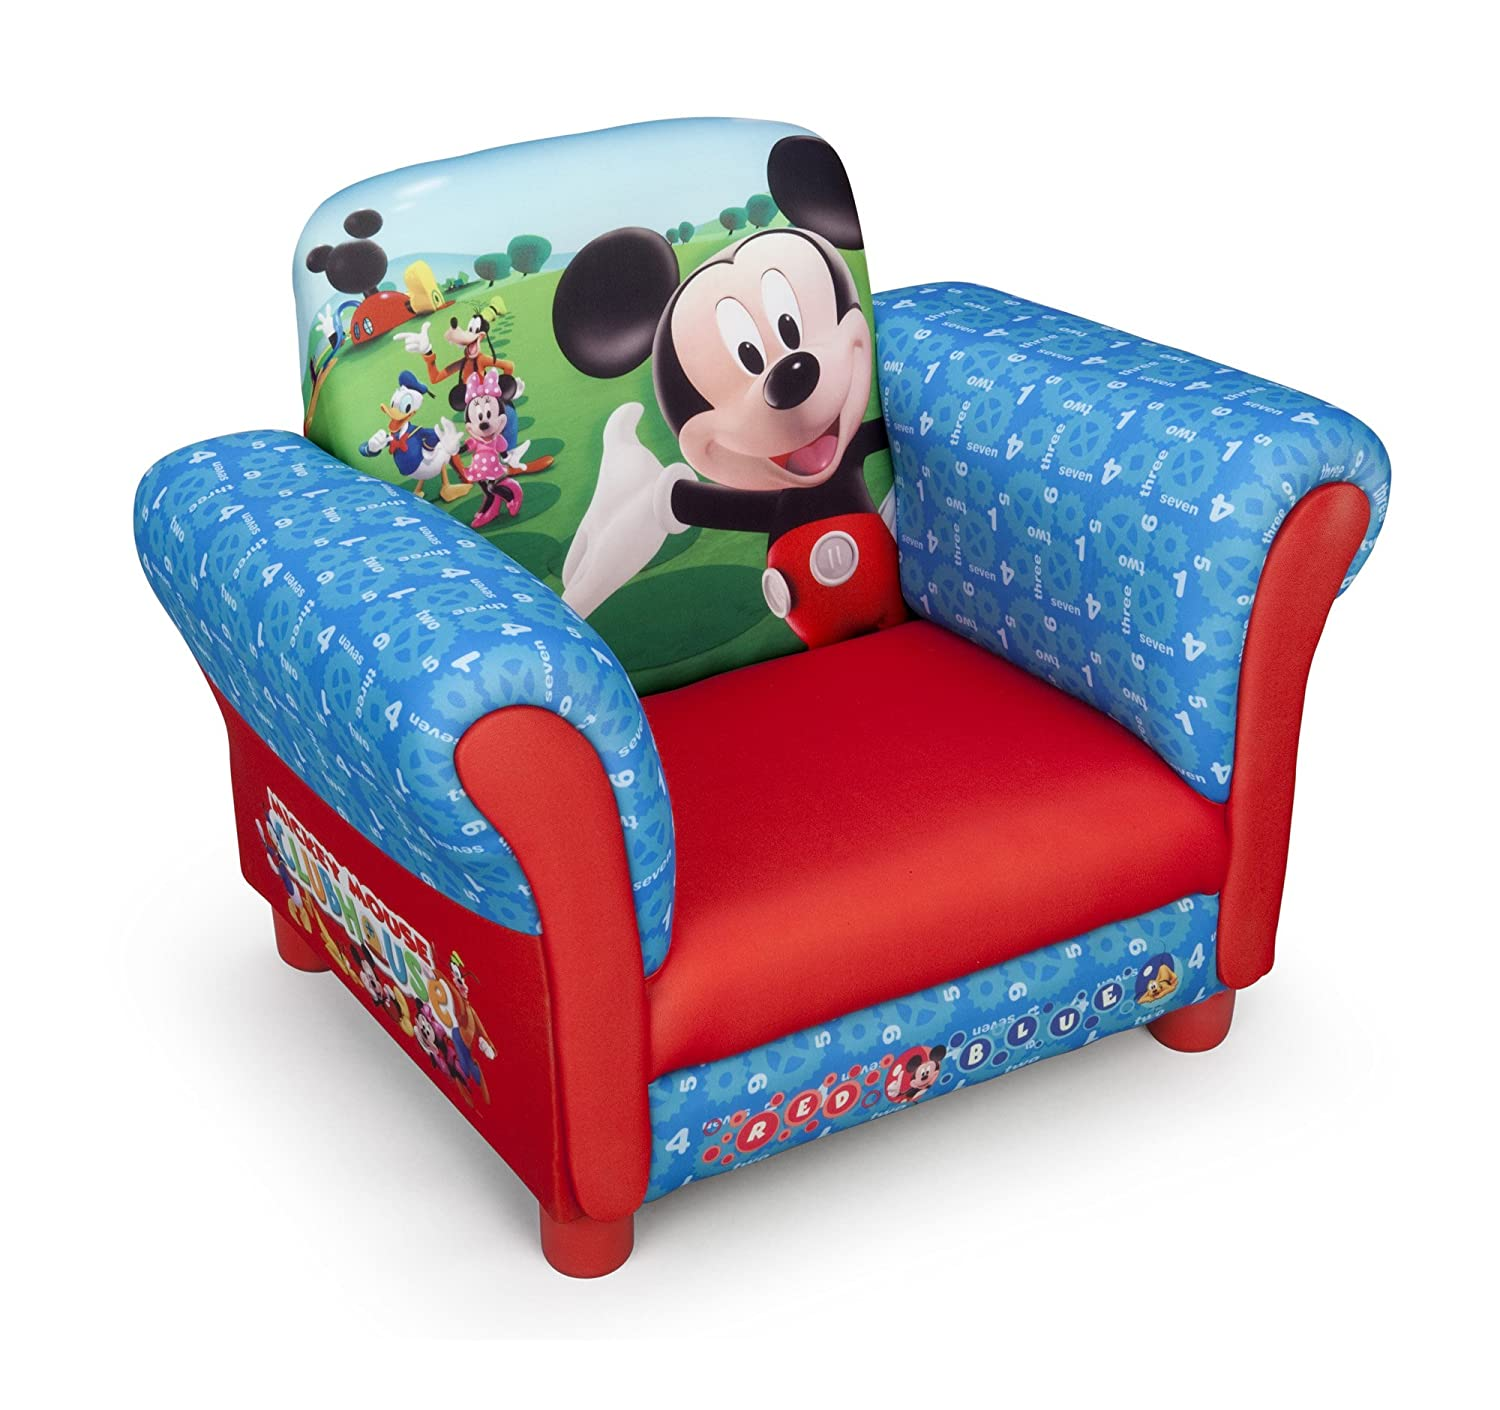 Disney Children s Mickey Mouse Upholstered Chair Amazon Baby